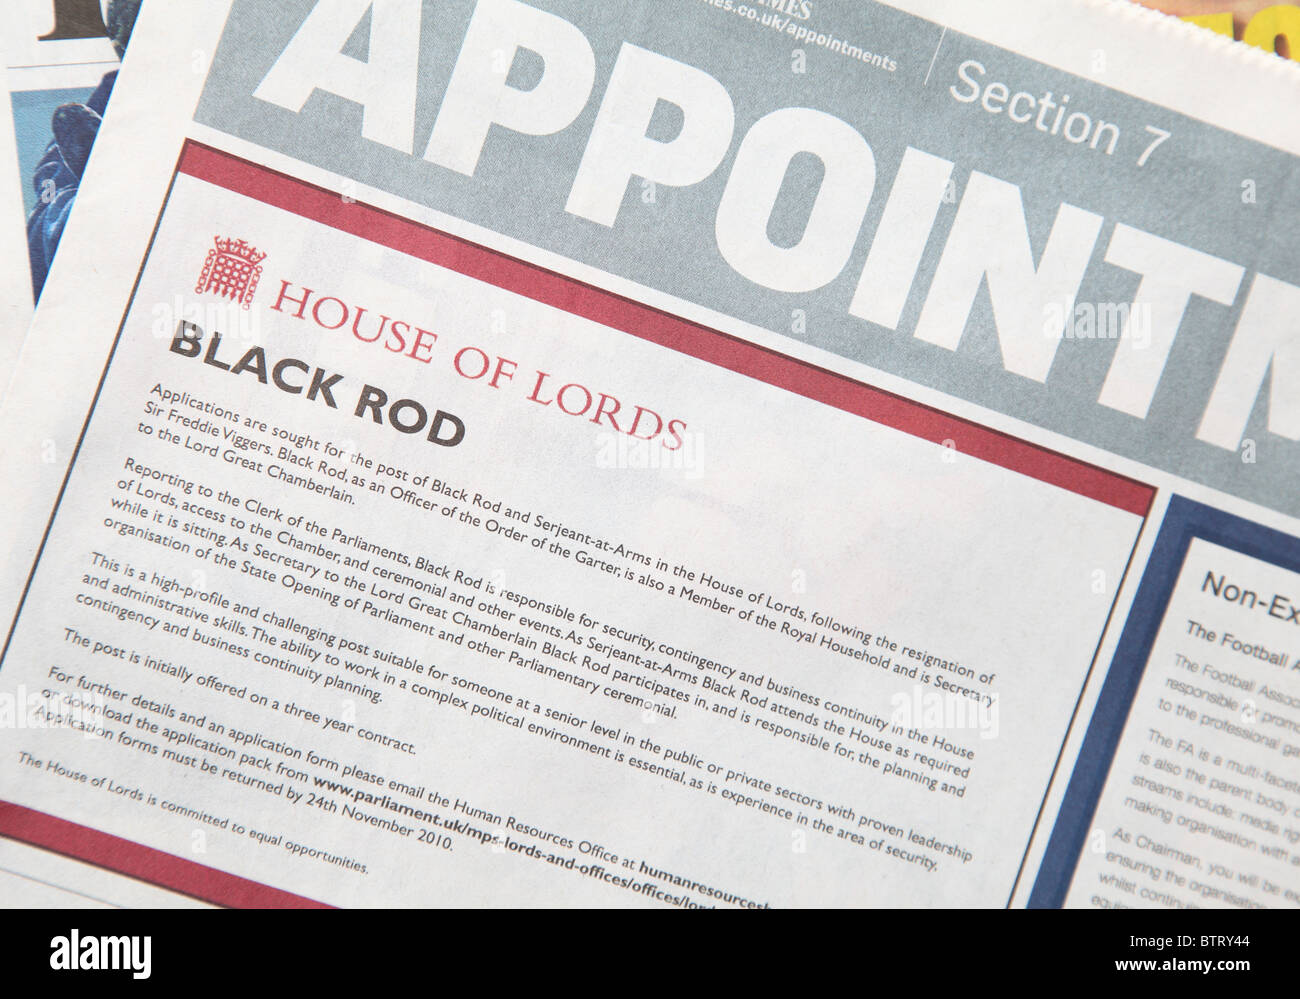 An advertisement in the appointments section of the Times newspaper. - Stock Image